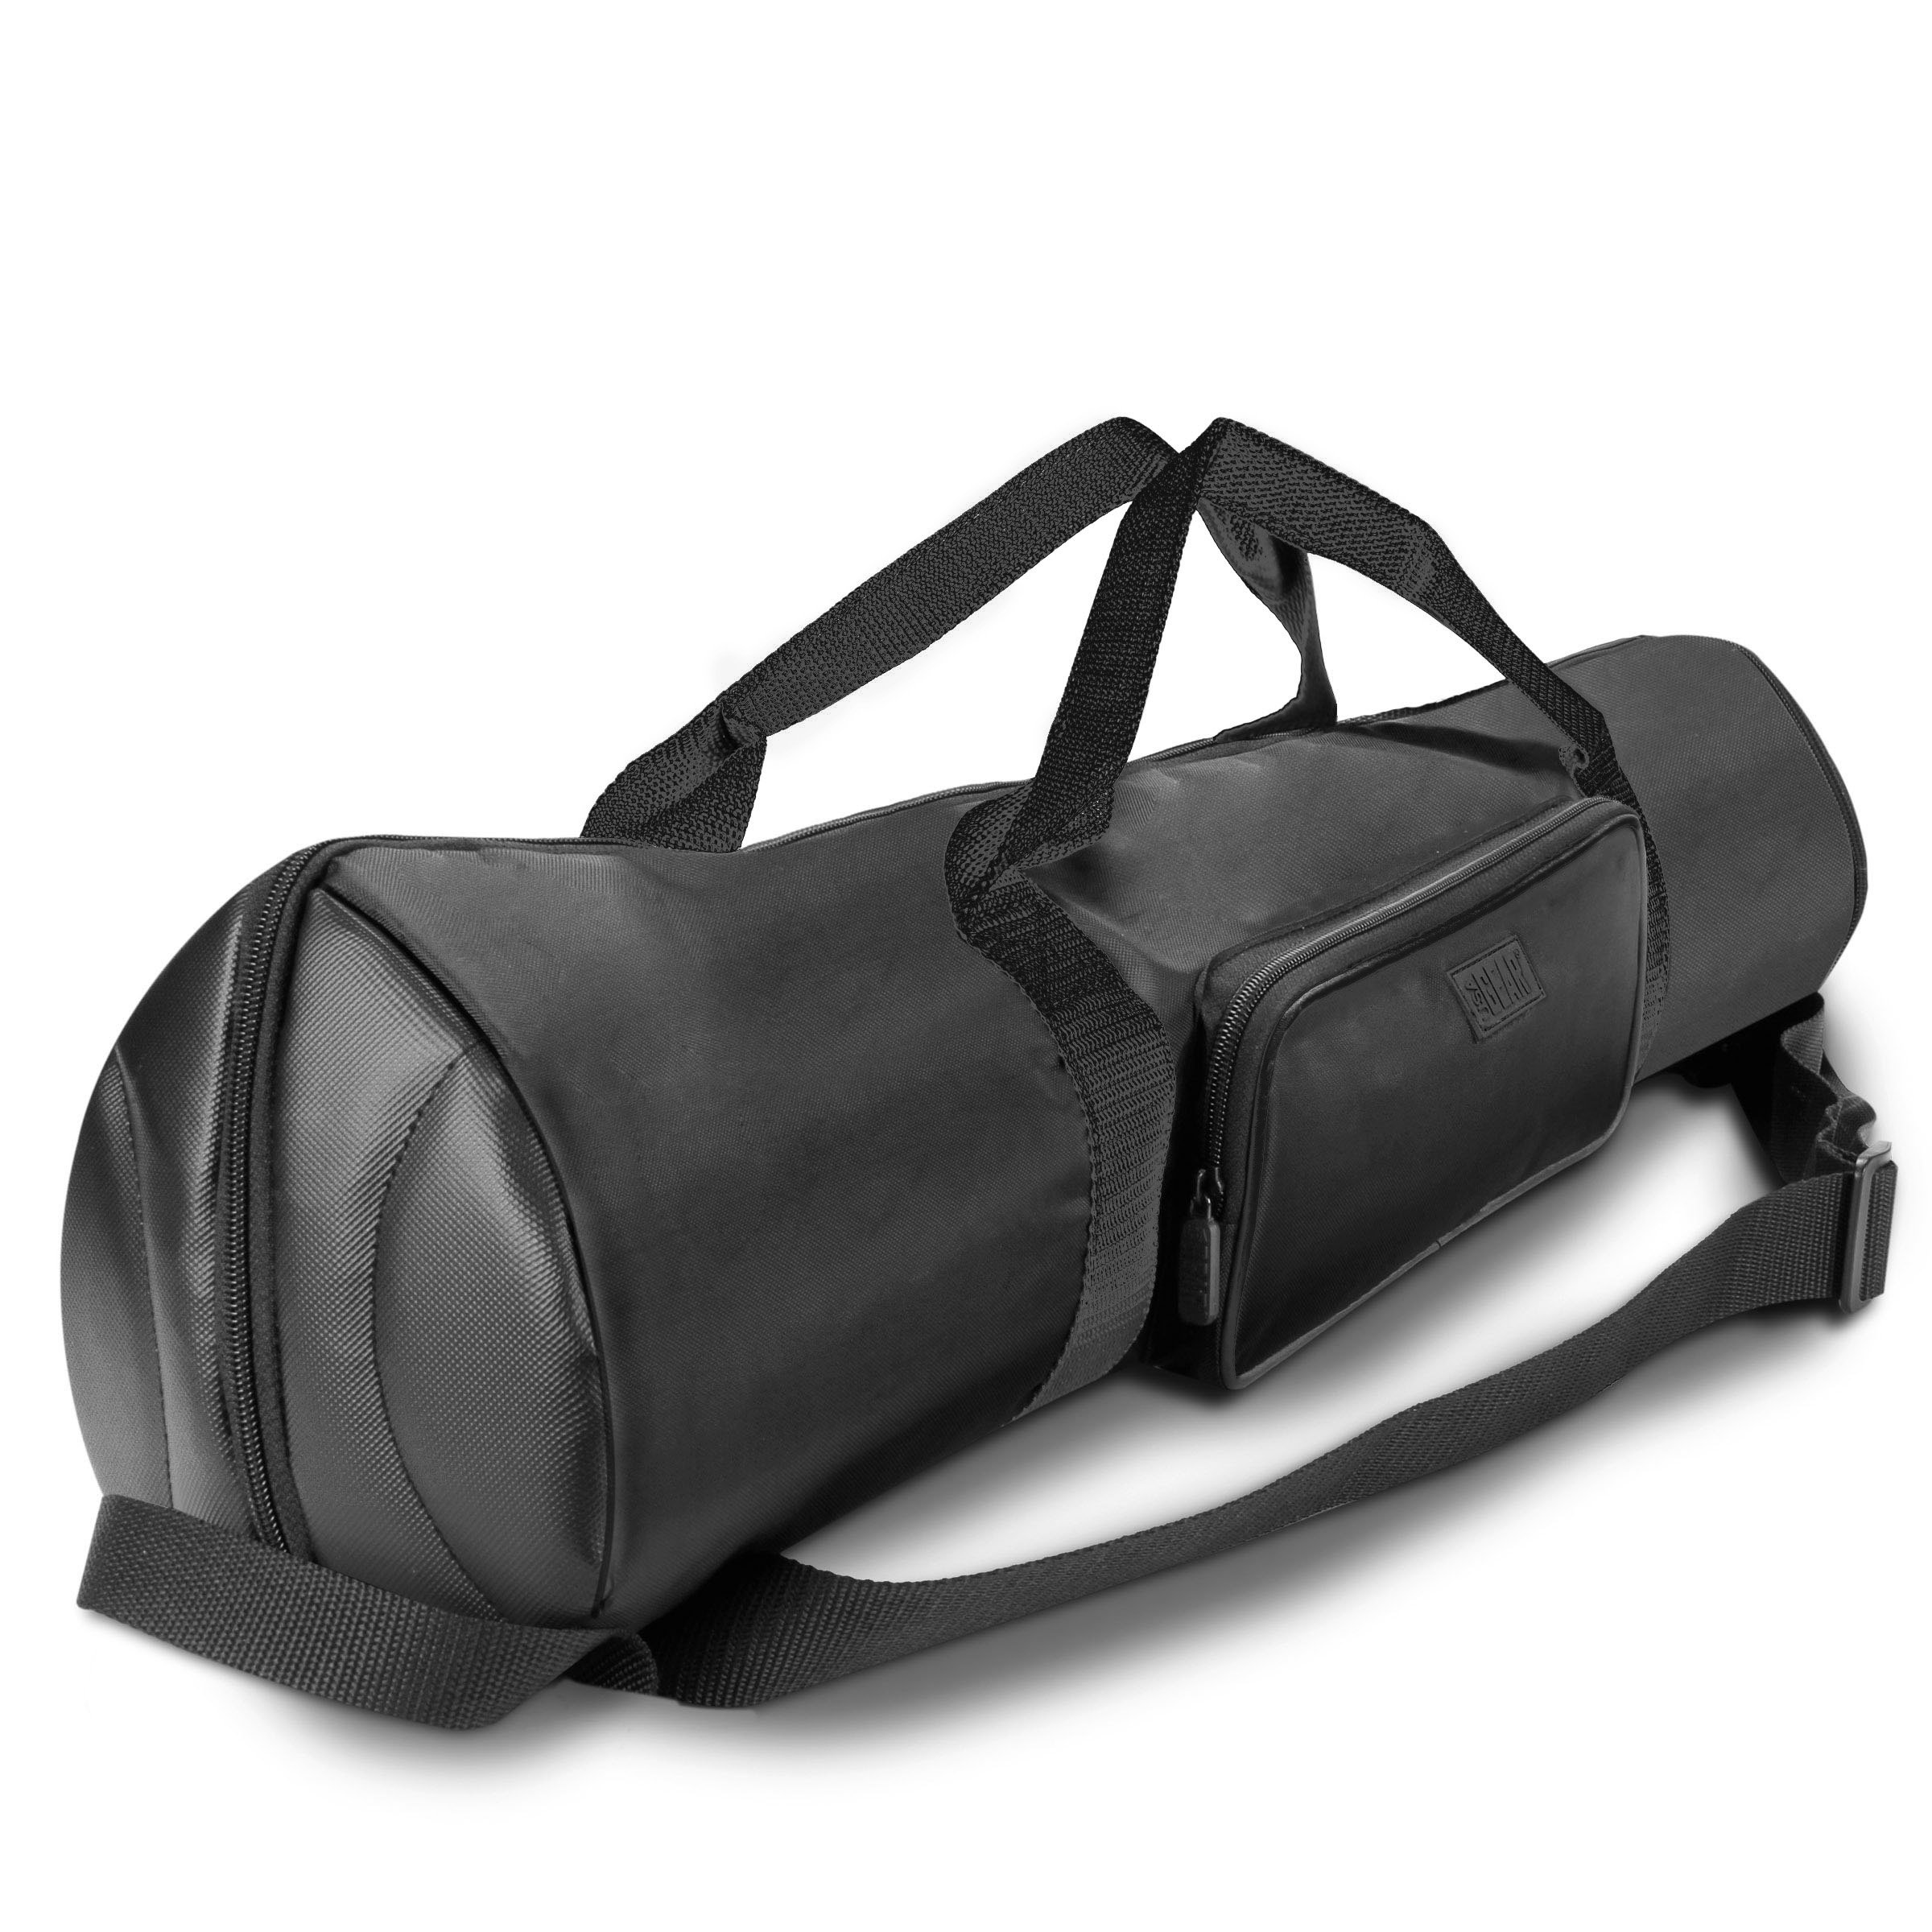 USA Gear Padded Tripod Case Bag (Black) - Holds Tripods from 21 to 35 inches - Adjustable Size Extension, Storage Pocket and Shoulder Strap for Professional Camera Accessories and Photo Carrying Needs by USA Gear